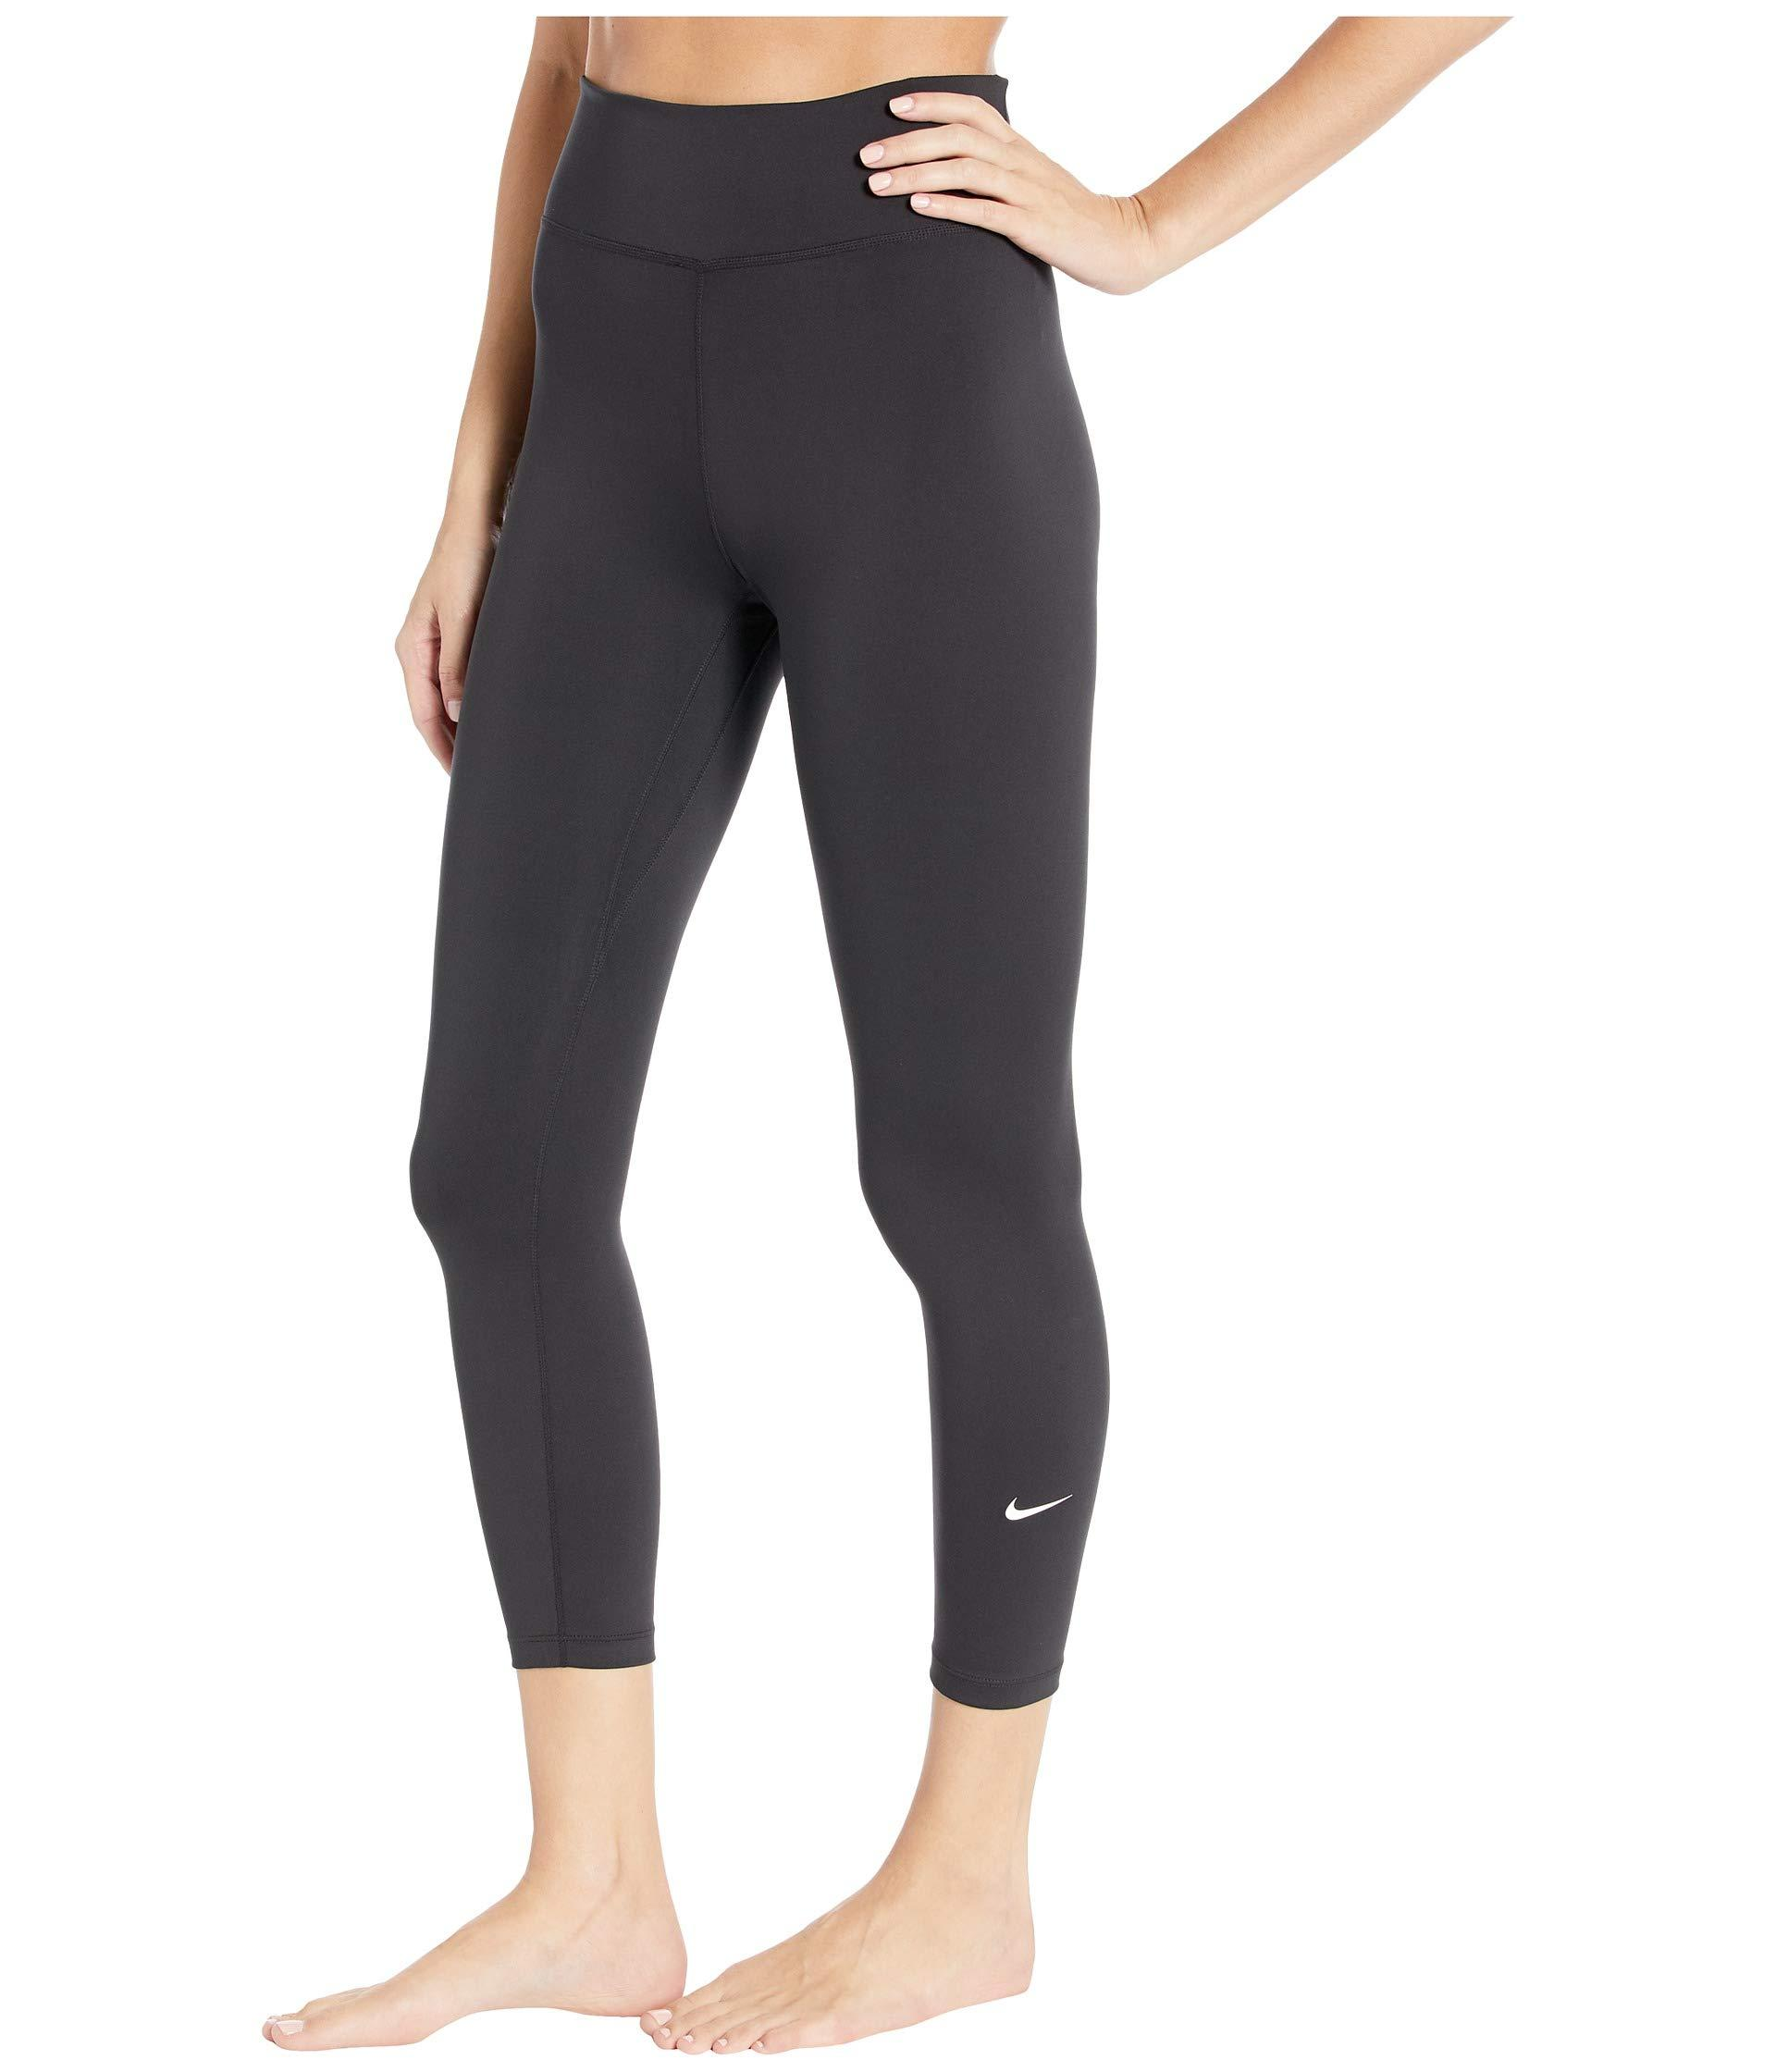 f1e3d53a0df45 Nike One Crop Pants (black/white) Women's Casual Pants in Black - Lyst